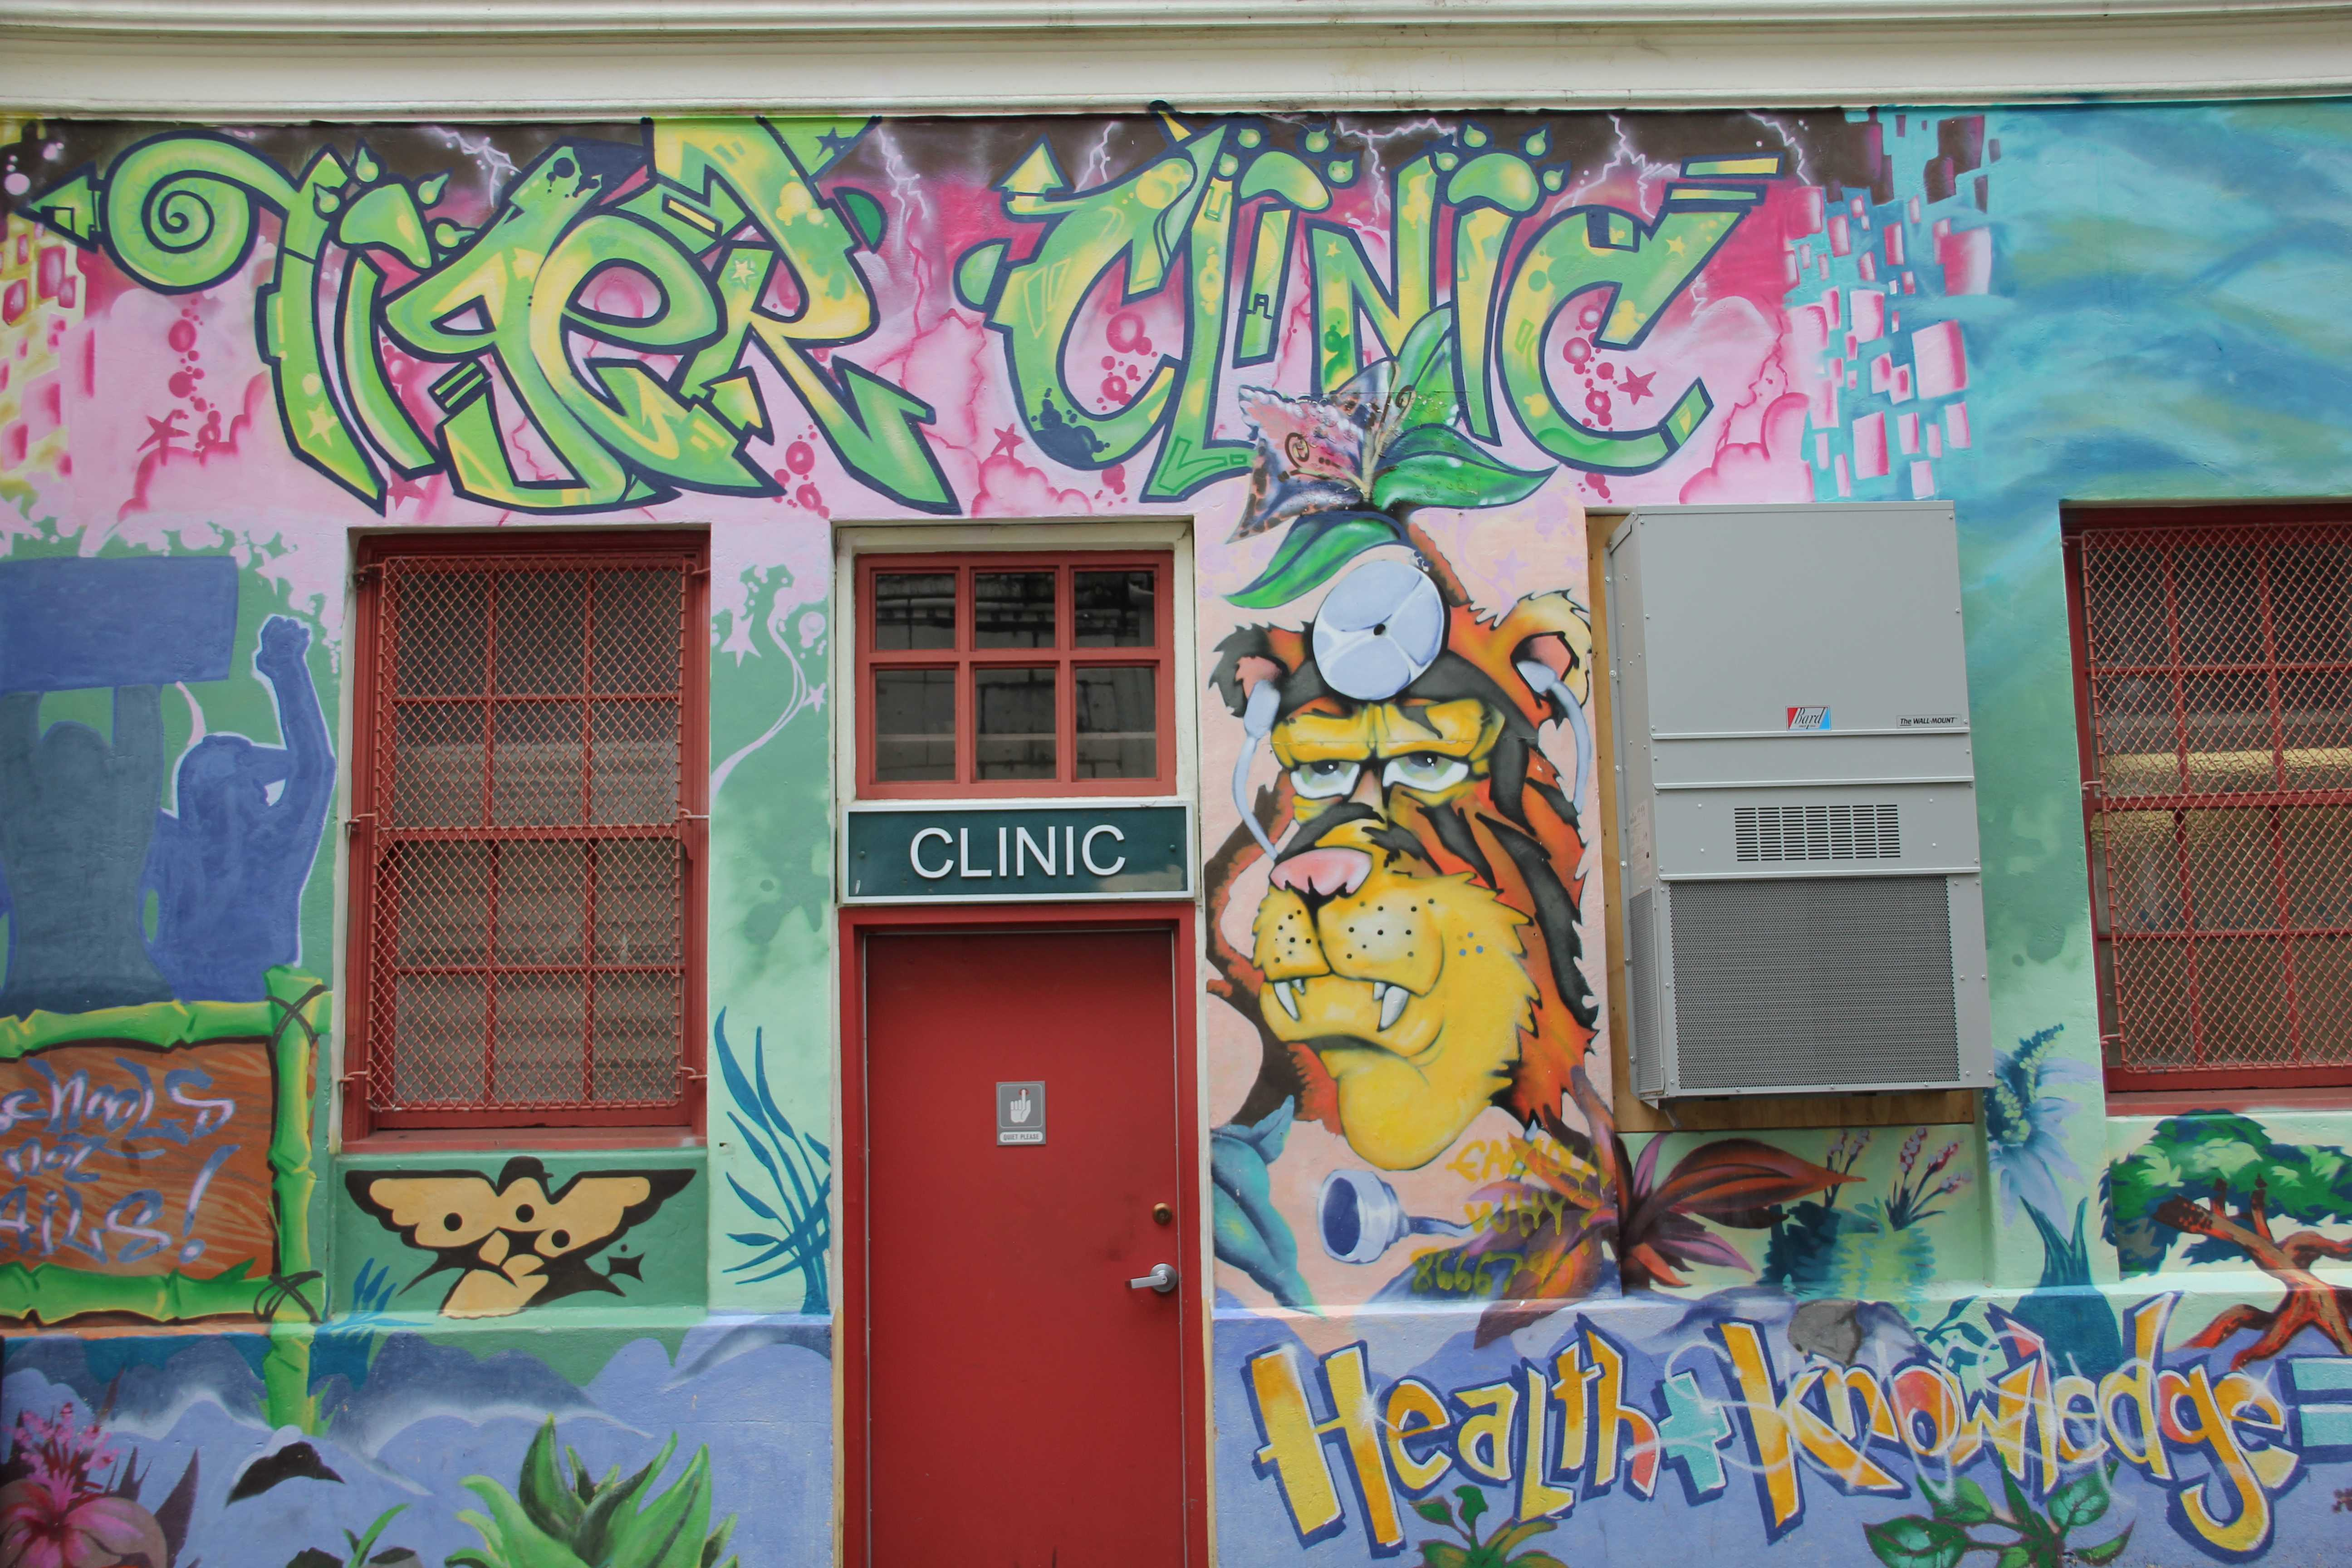 Paint accident leaves clinic mural blank